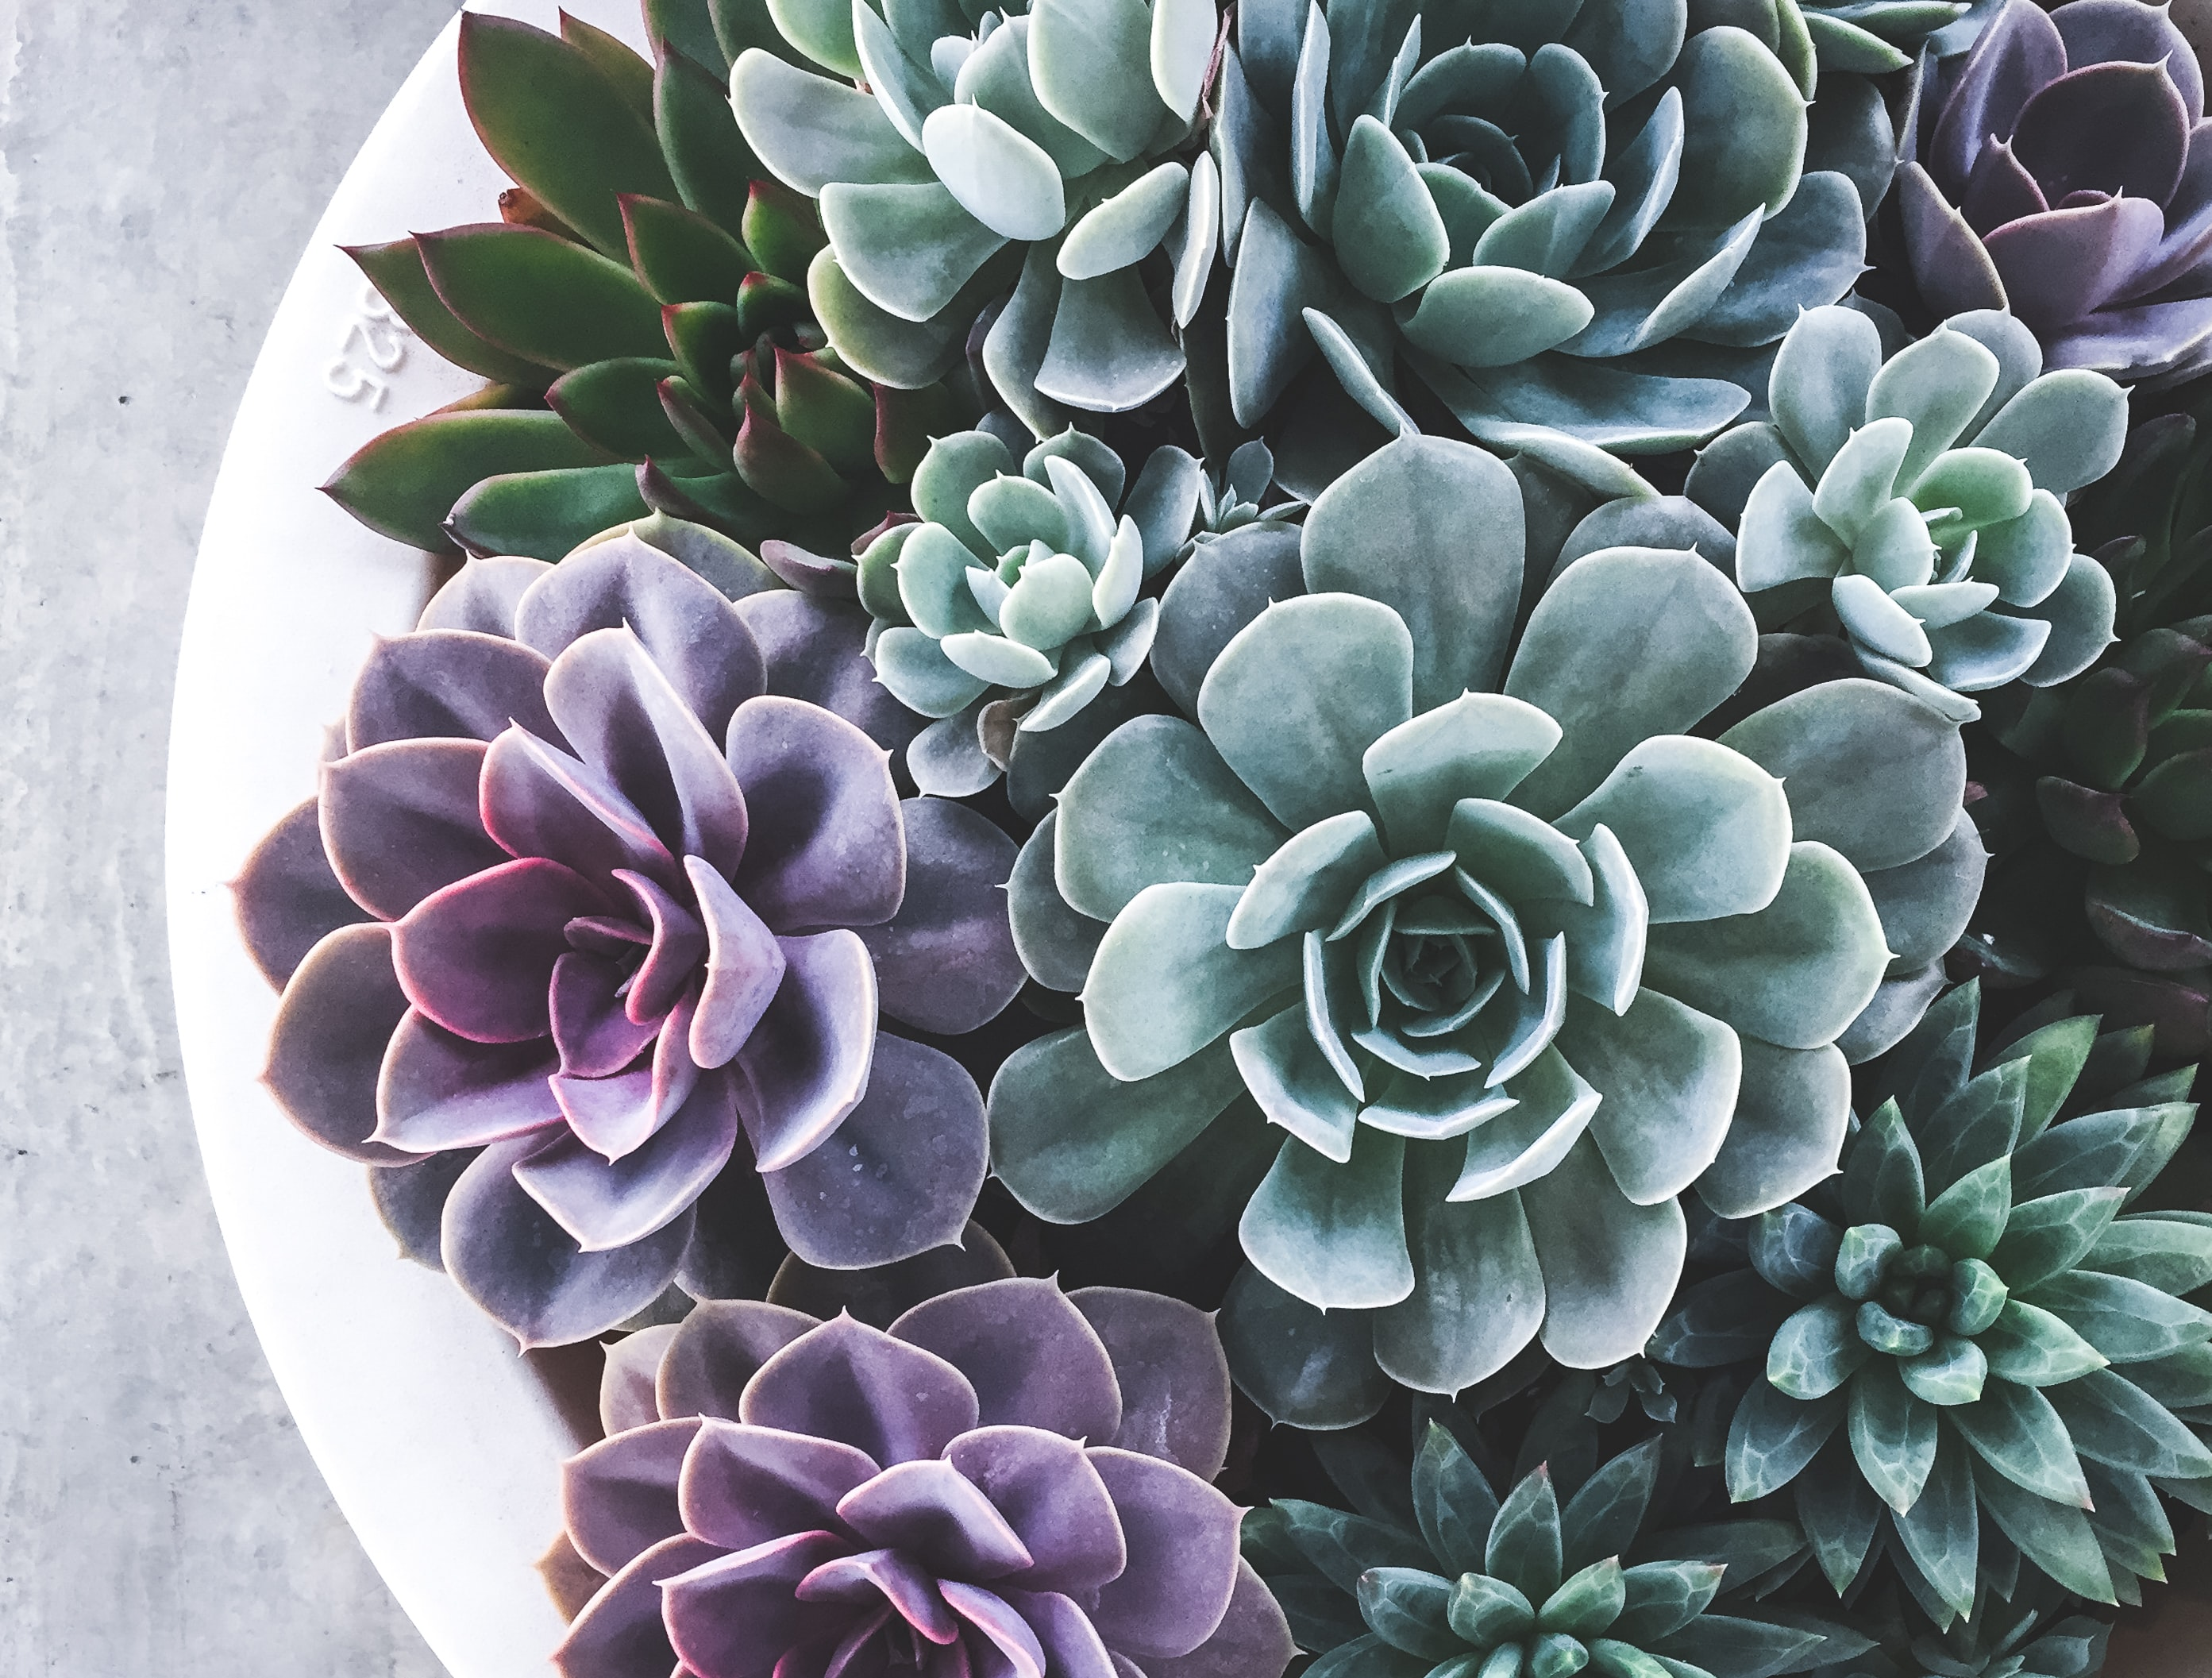 5 Houseplants You Can't Kill's featured image